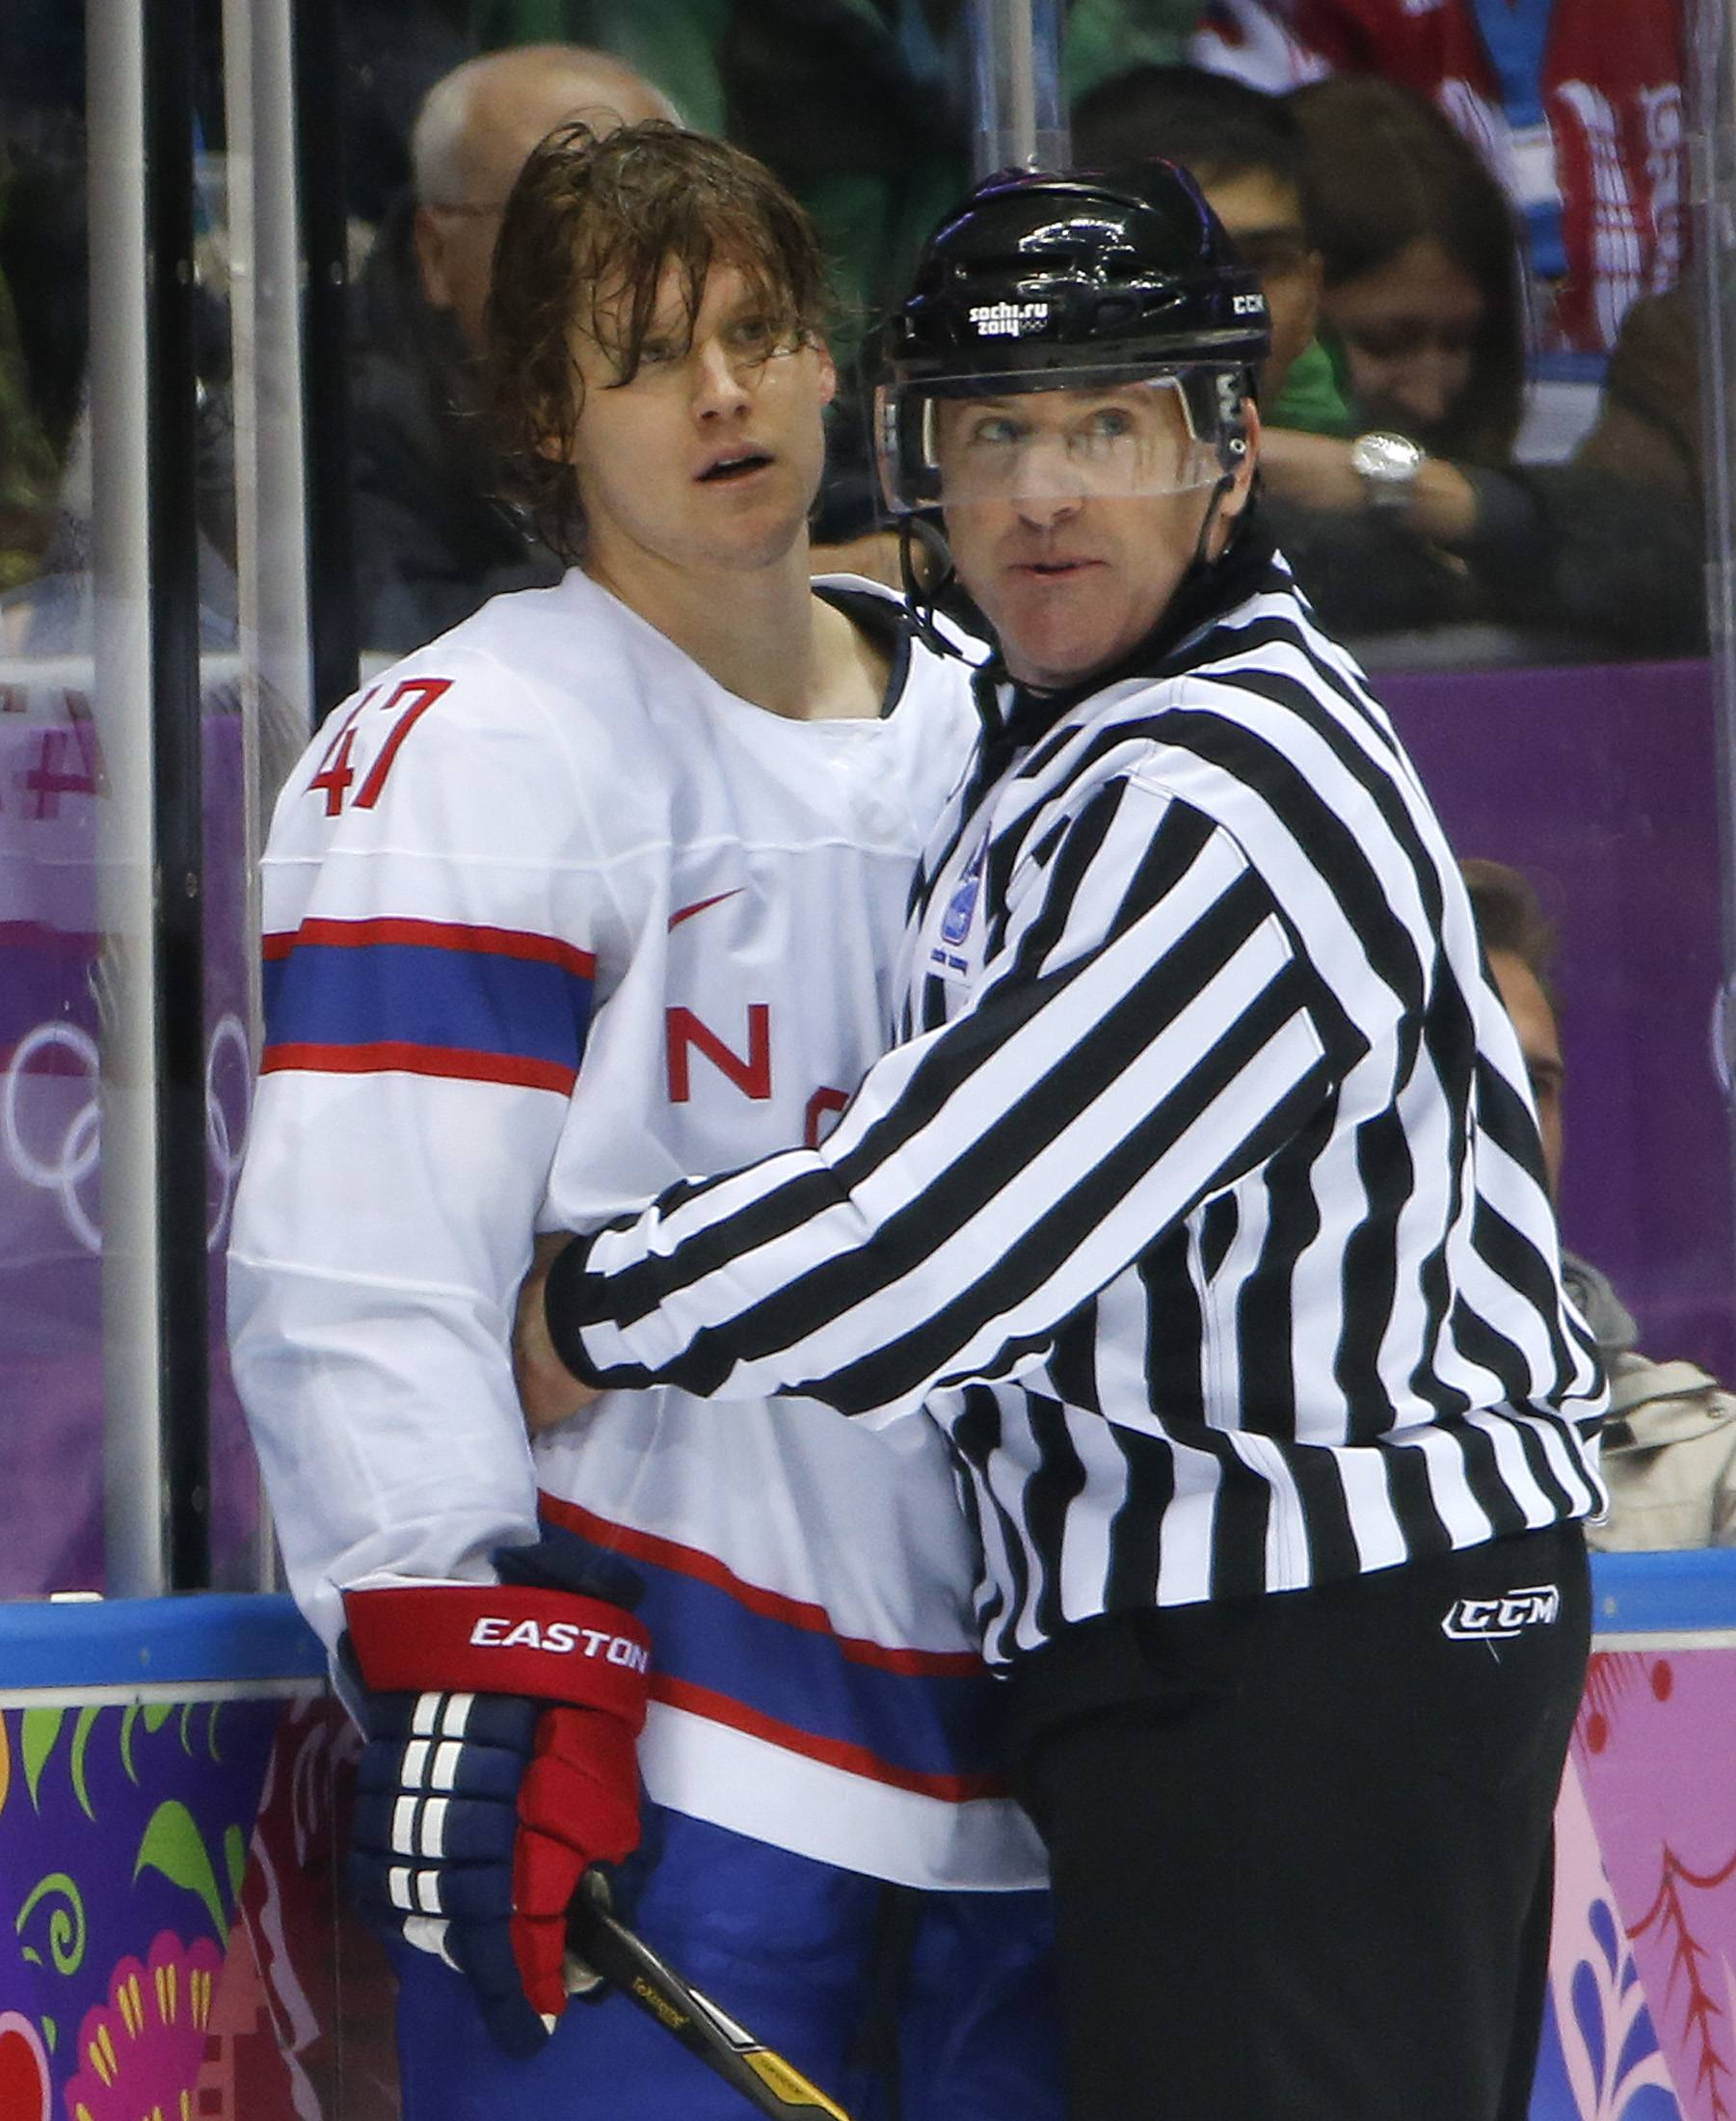 A referee holds back Norway defenseman Alexander Bonsaksen after a scuffle with Canada forward Chris Kunitz.